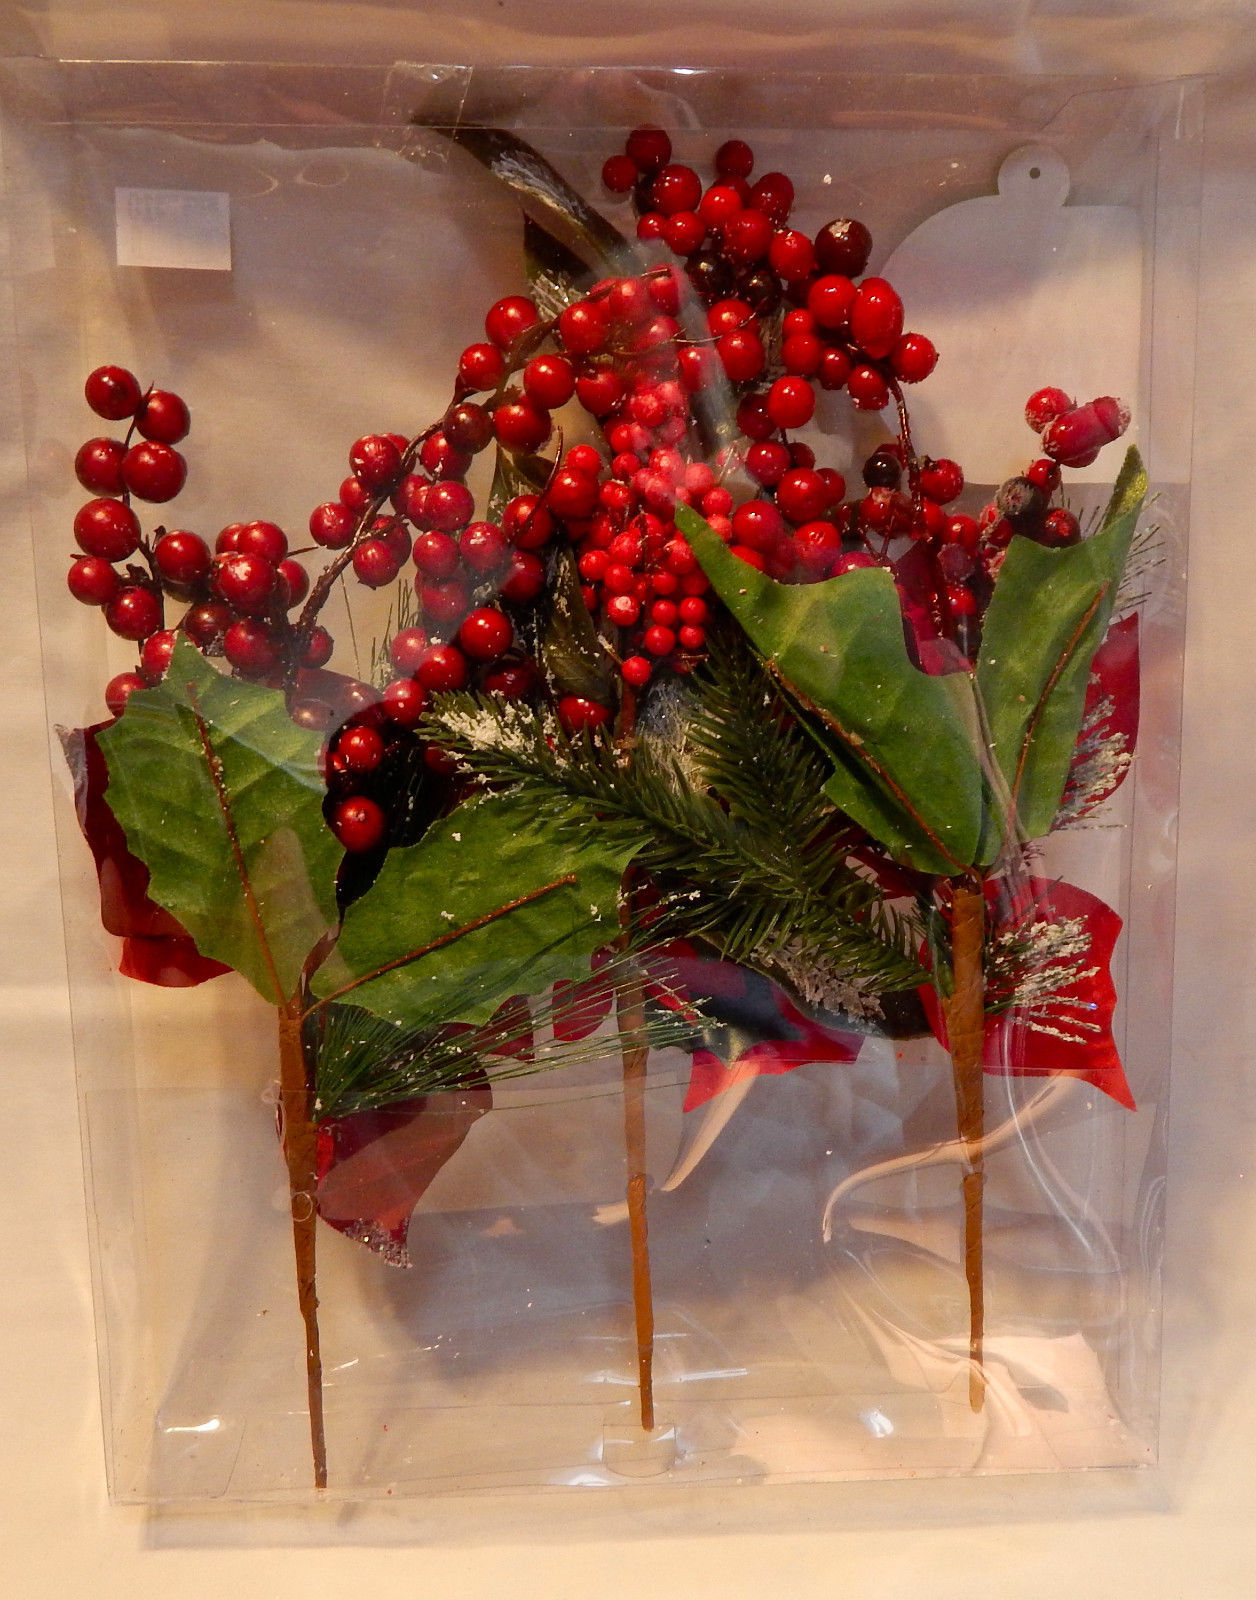 Deluxe Floral Picks Fall Decor Red Flowers All Holidays 3ea Berries & Snow 33T